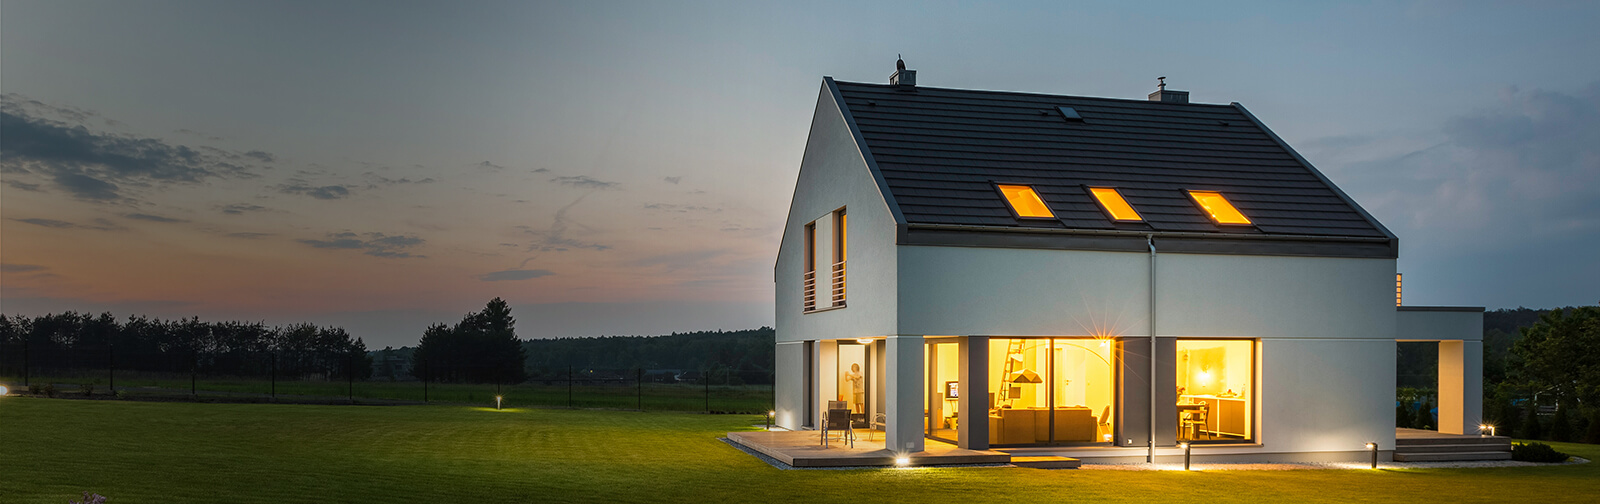 Detached property lit up by its internal and external lighting